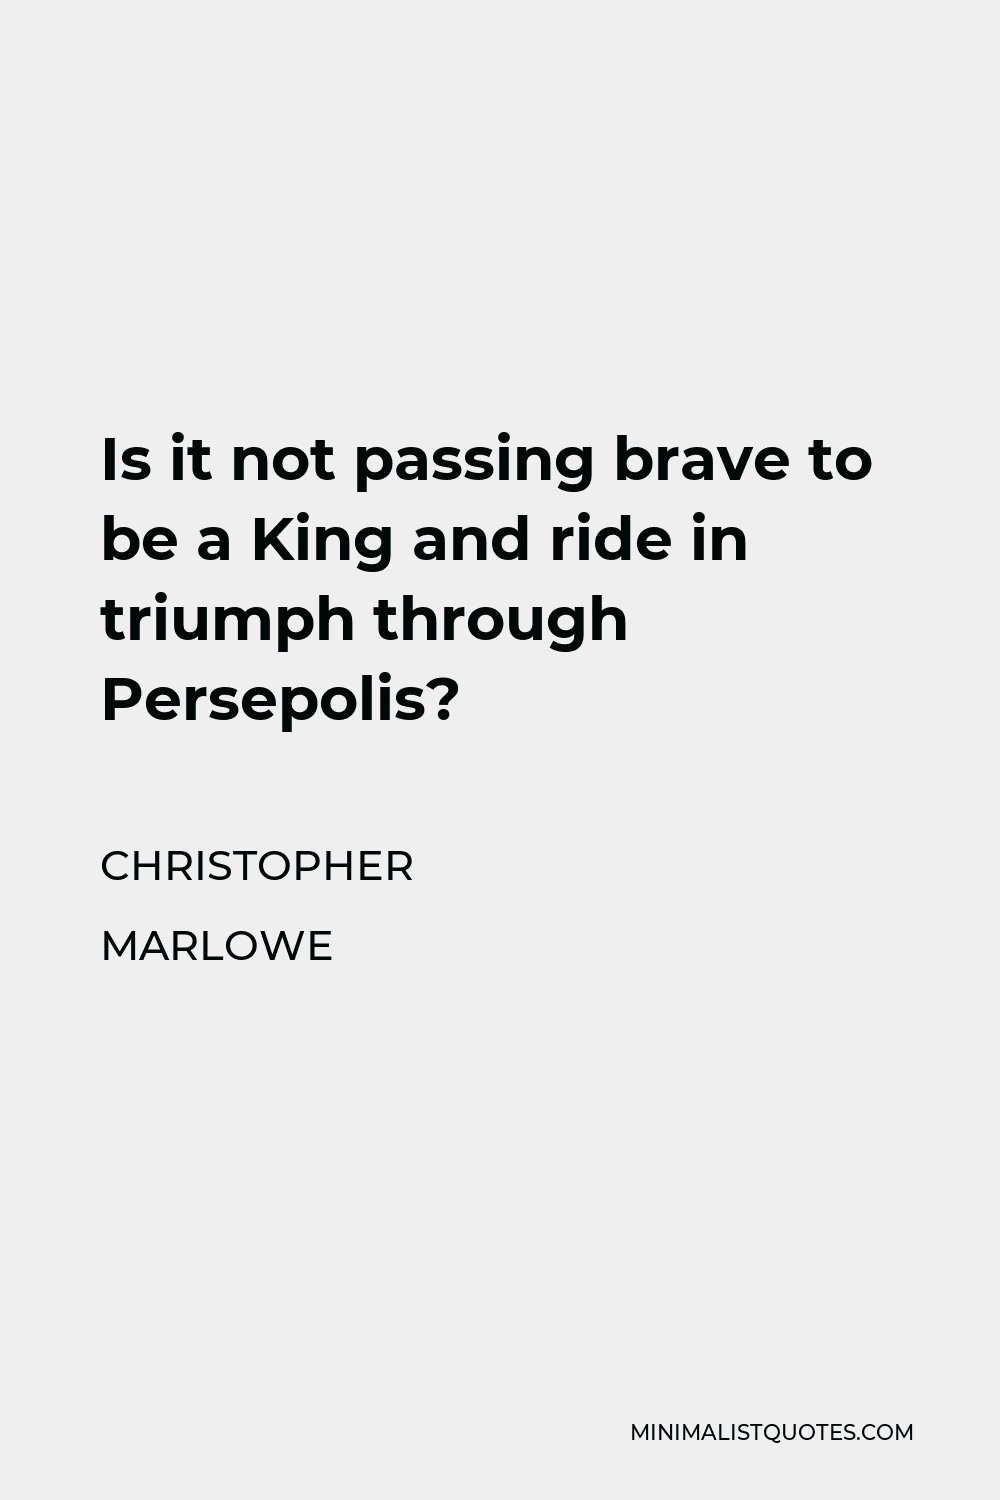 Christopher Marlowe Quote - Is it not passing brave to be a King and ride in triumph through Persepolis?